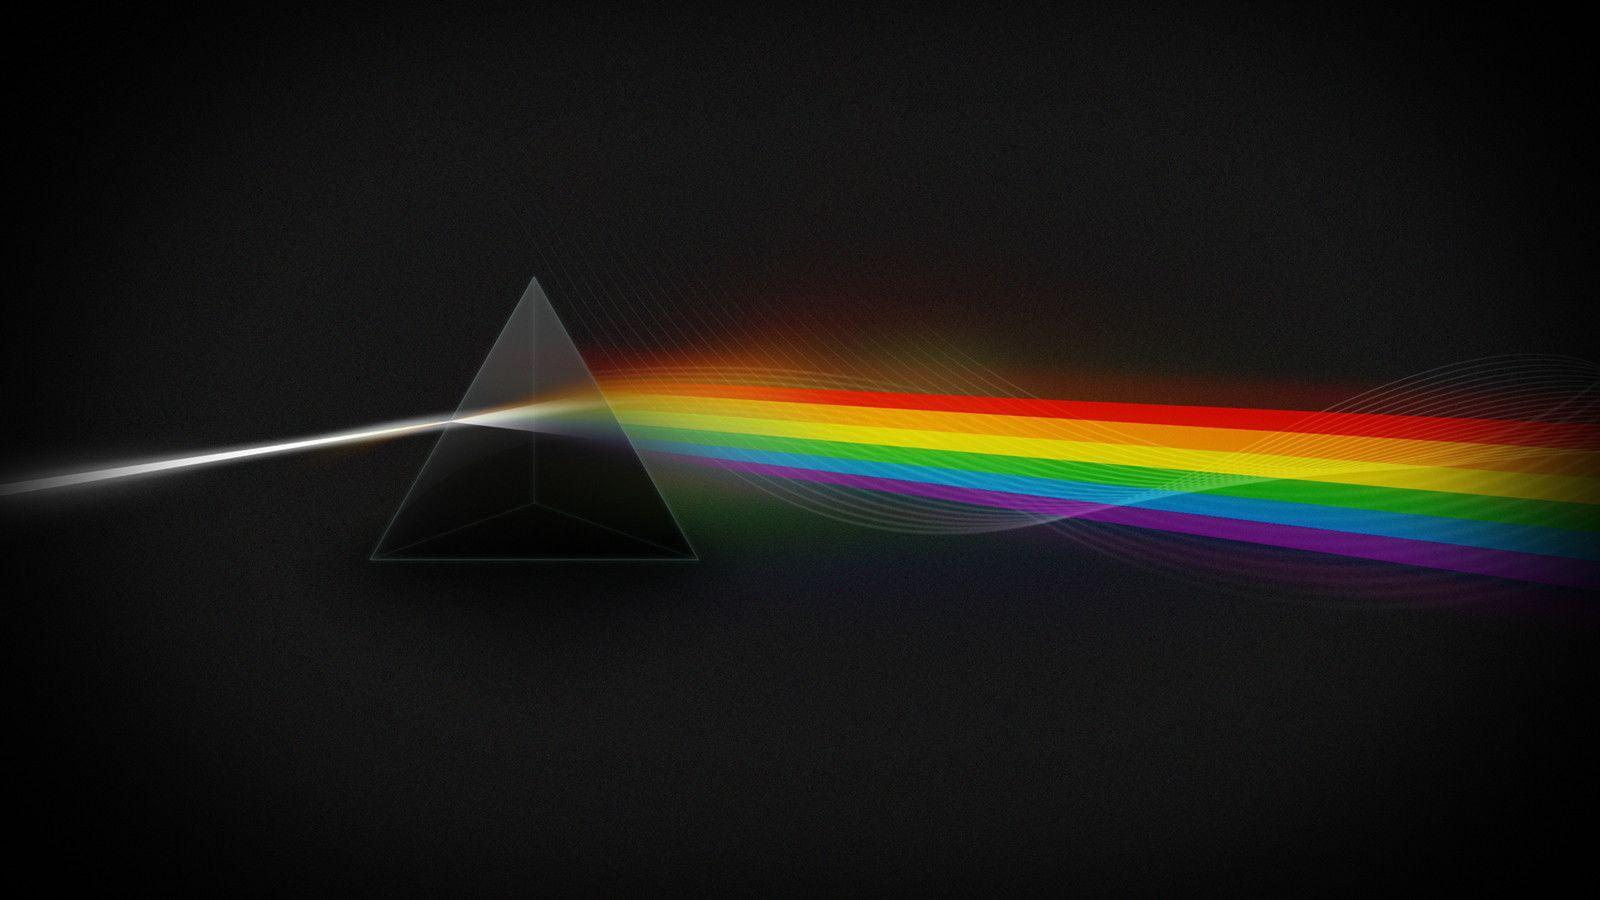 Wallpapers For > Pink Floyd Dark Side Of The Moon Album Cover